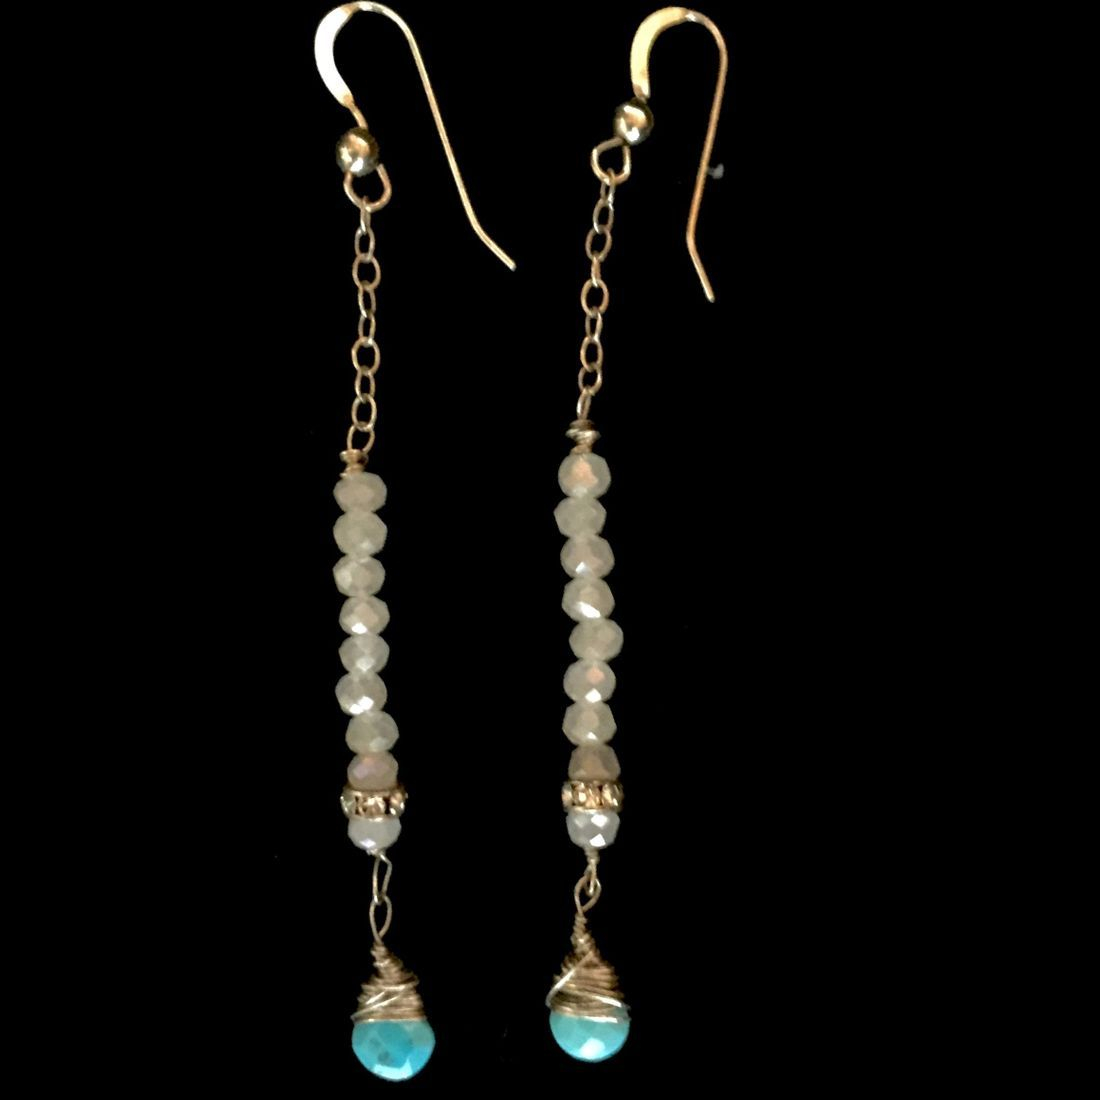 turquoise and moonstone candle earrings with Swarovski crystals on sterling chains and shepherd hooks